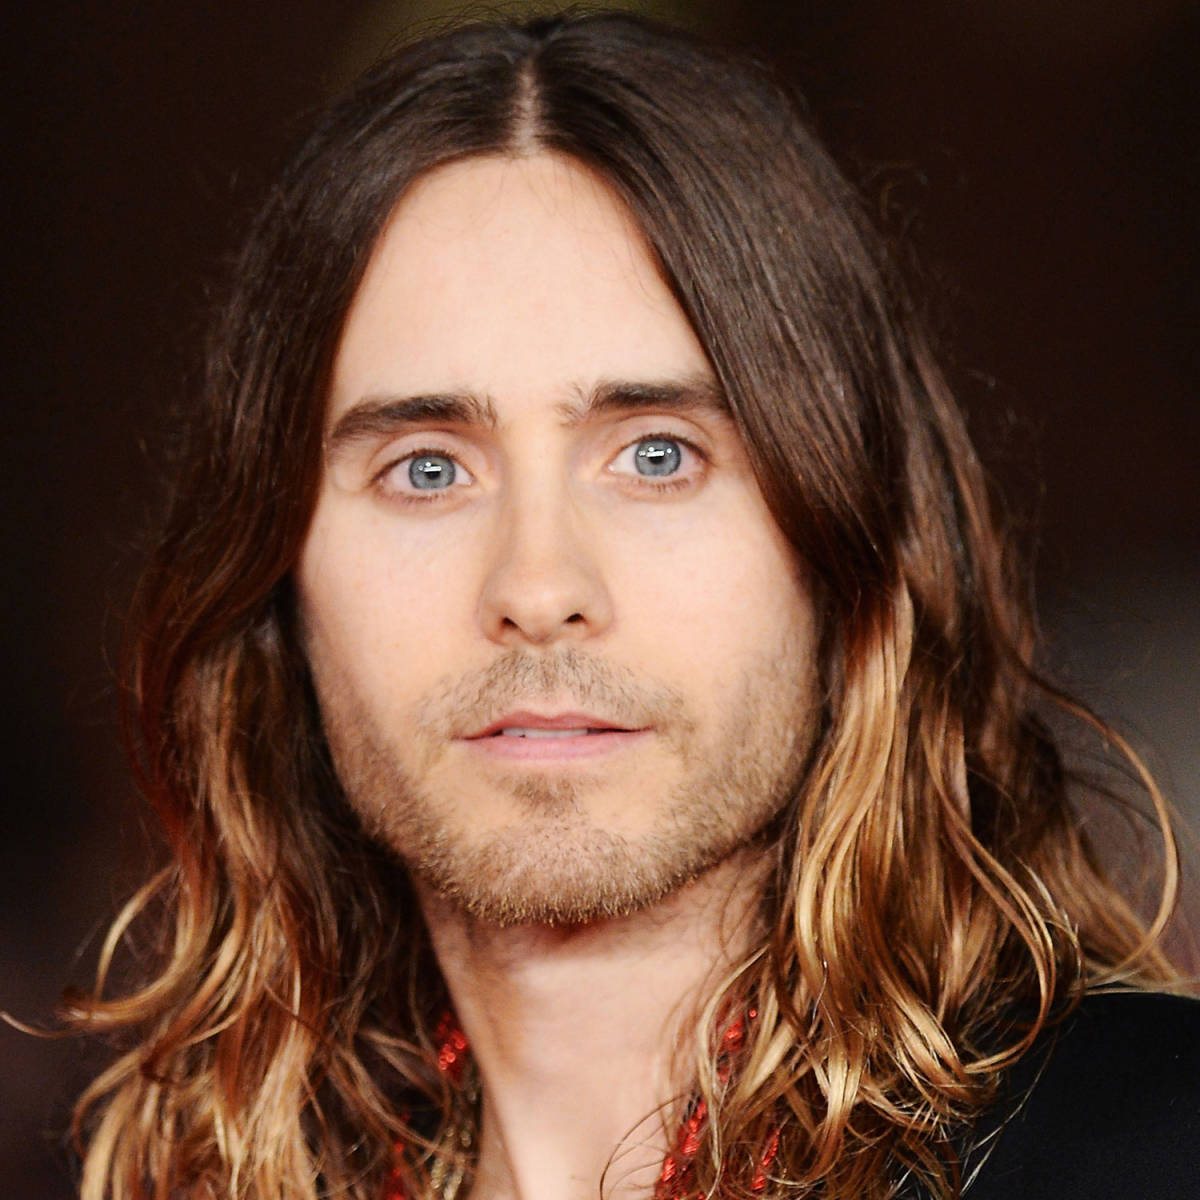 Singer and actor Jared Leto is Jared Leto